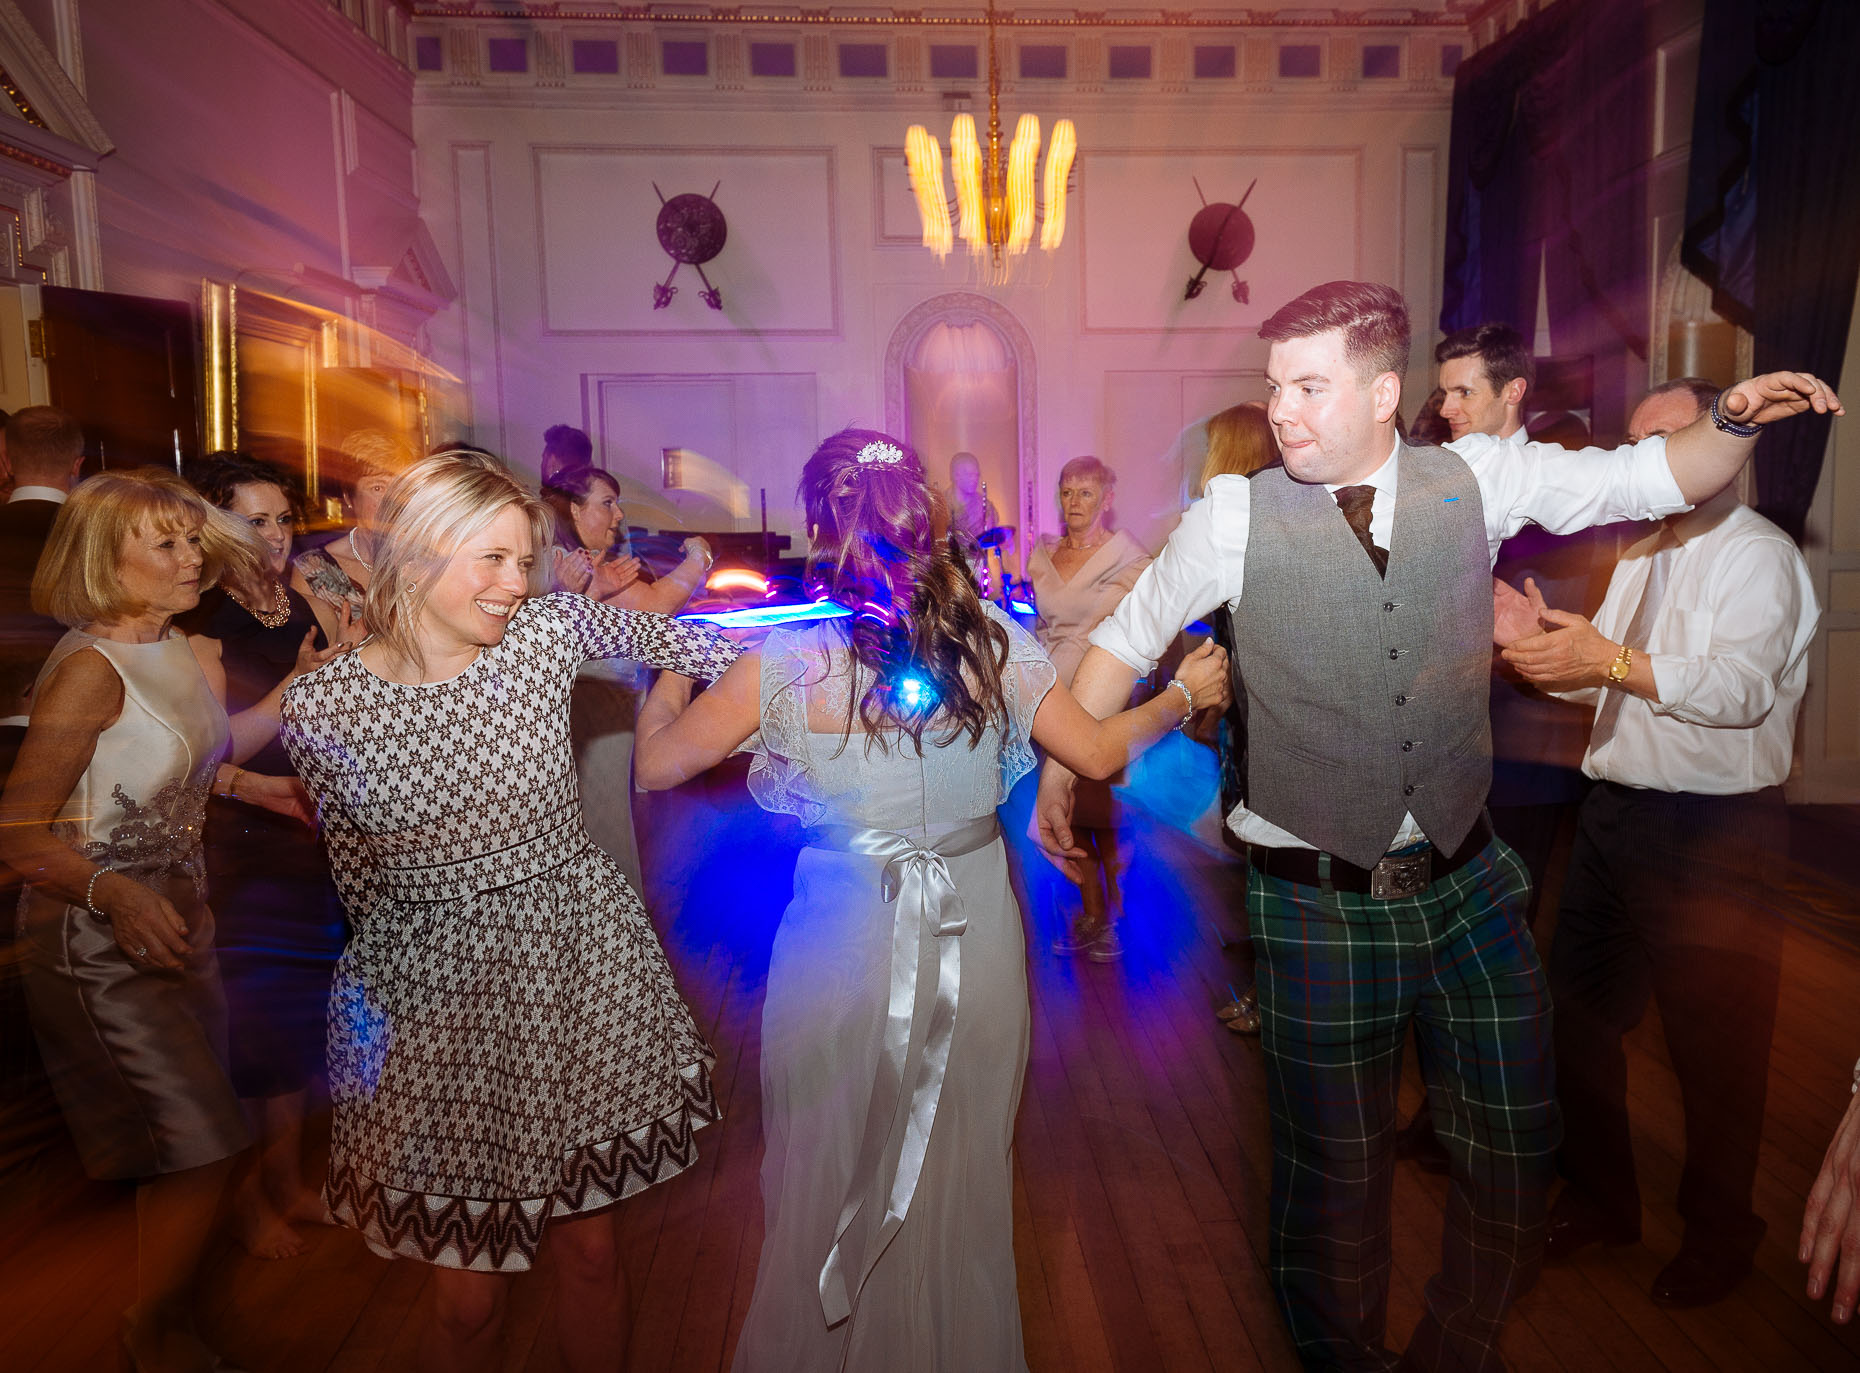 dancefloor-london-wedding-photographer-21